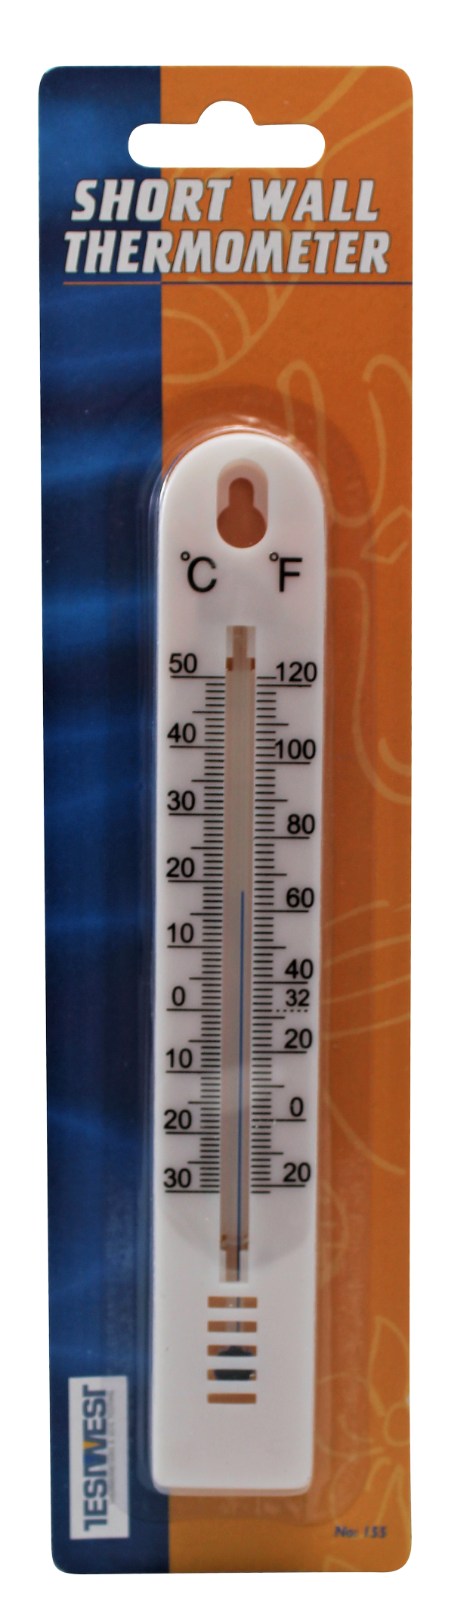 WALL THERMOMETER OFFICE HOME GARDEN INDOOR OUTDOOR MULTIPURPOSE GREENHOUSE